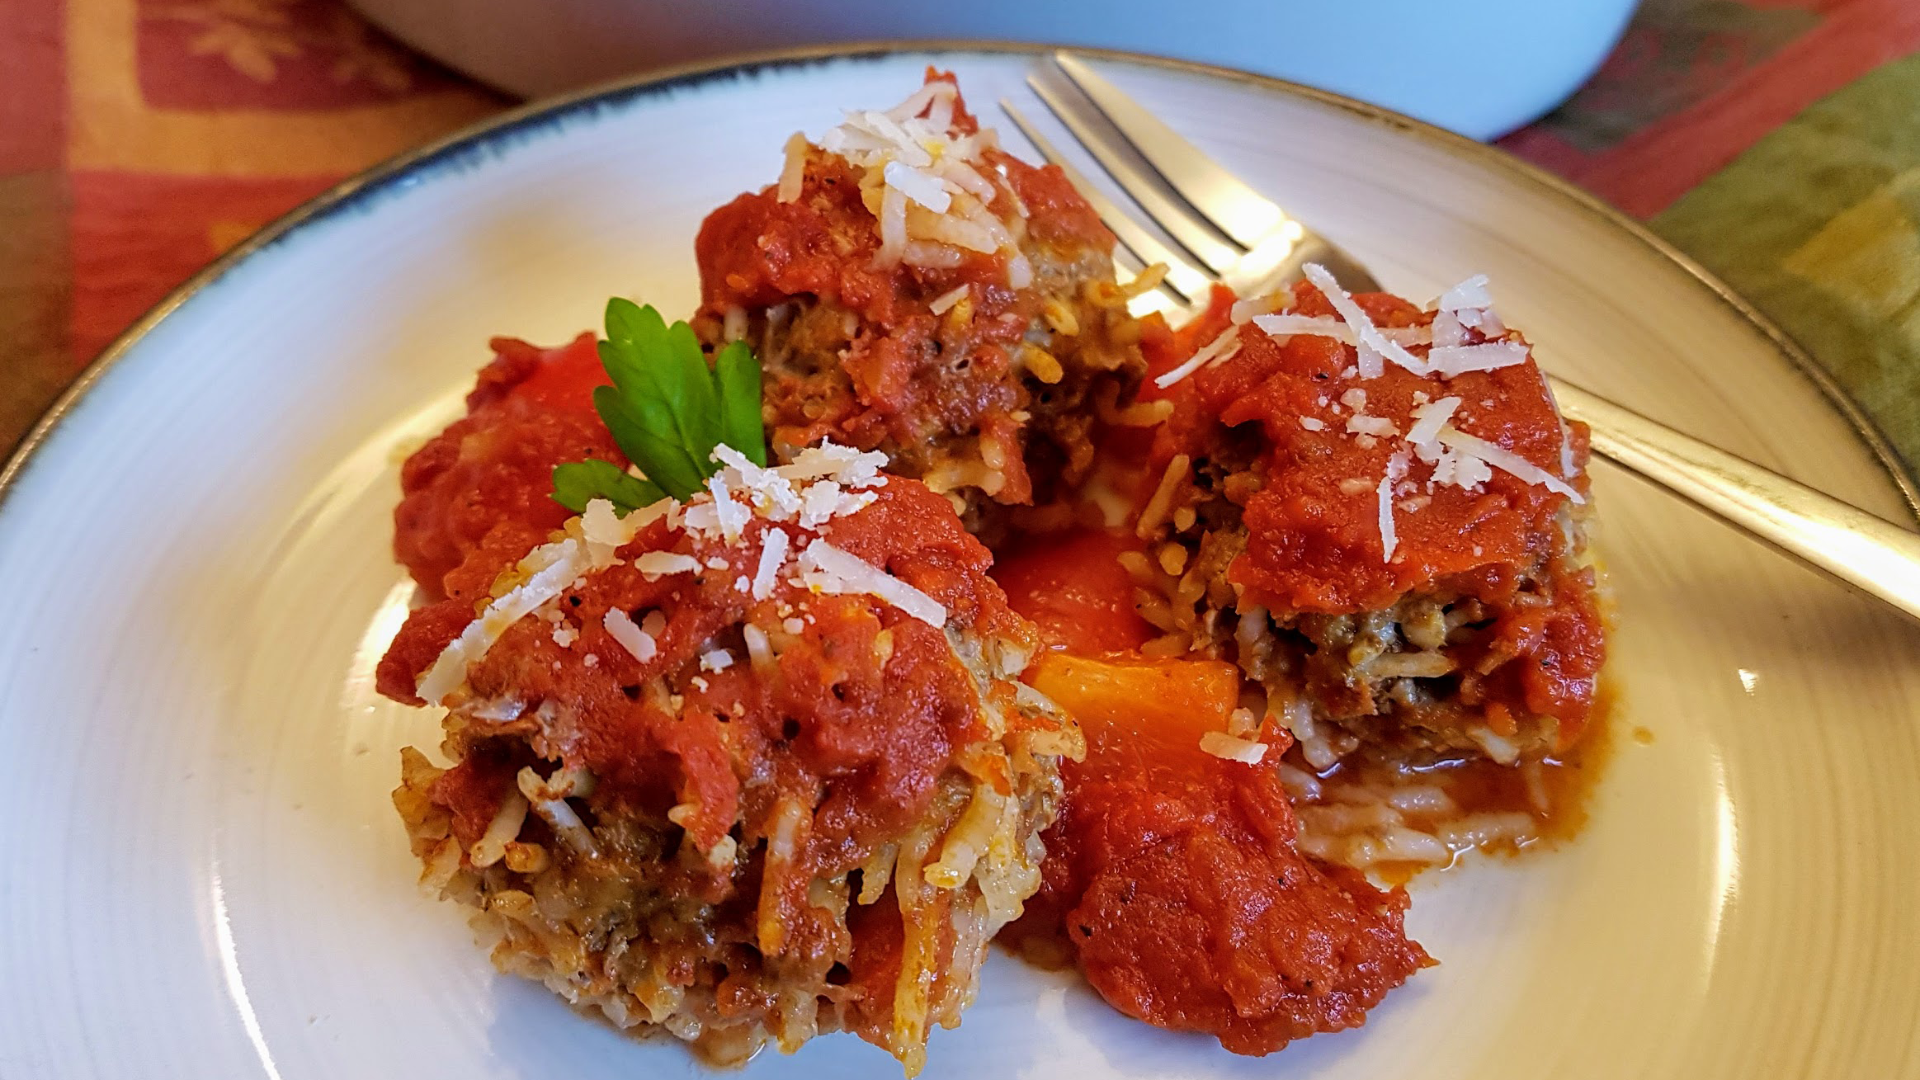 Porcupine meatballs on a plate